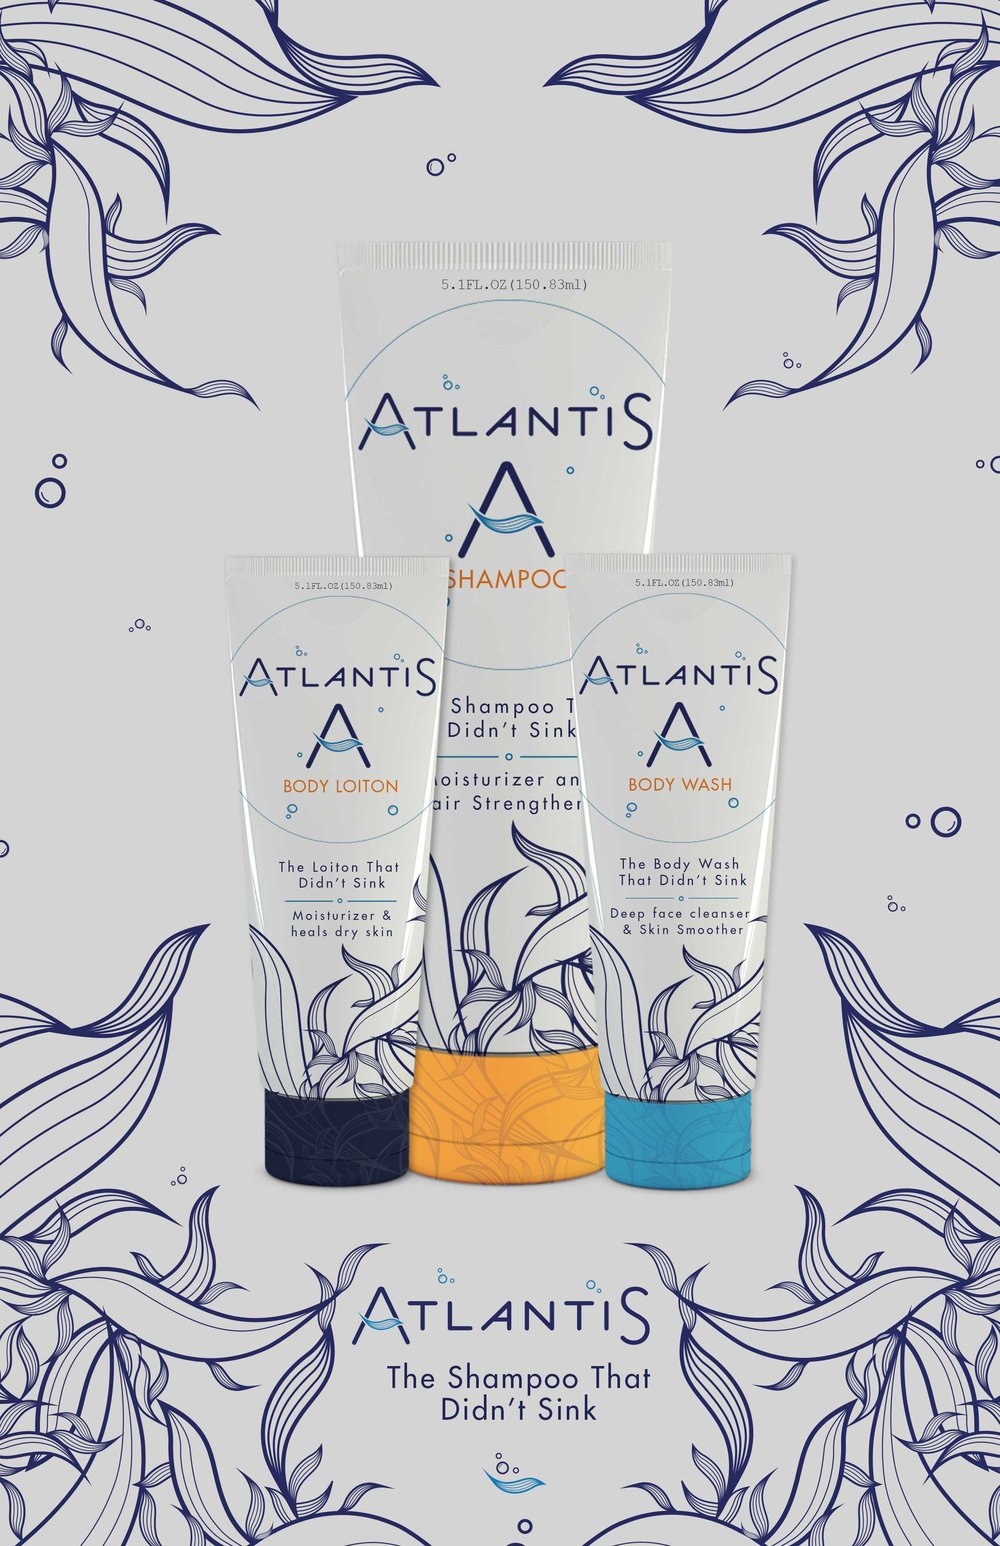 Atlantis Shampoo - Brand Concept / Package Design2016Atlantis Shampoo is a unisex shampoo brand that carries shampoo, body lotion, and body wash. The concept of the brand is based on the lost underwater city of Atlantis. The brand's identity uses a fresh and clean color scheme, while the seaweed pattern resembling hair marries the two worlds of sea-life and hygiene.